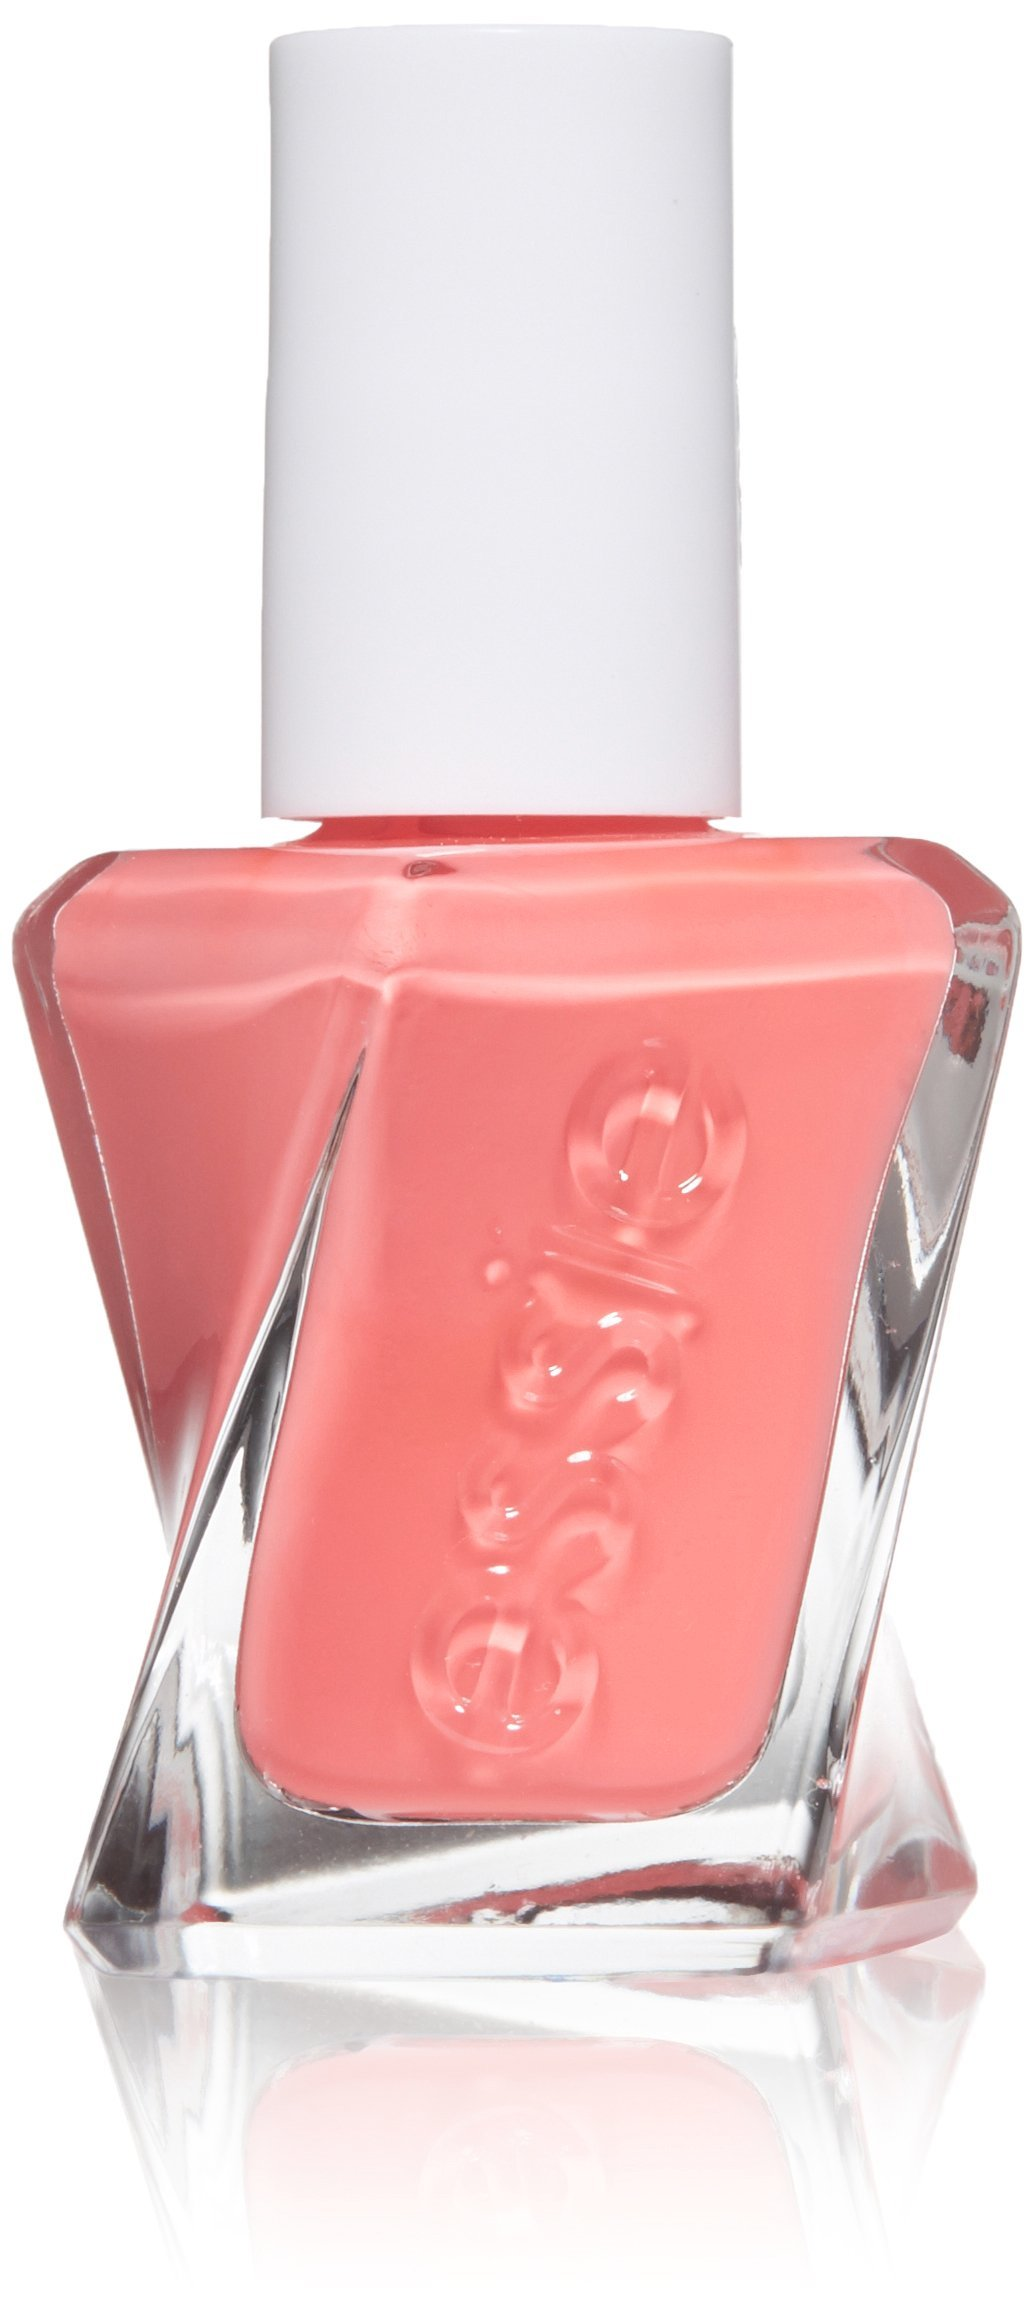 Amazon.com: essie gel couture nail polish, the it-factor, pink ...